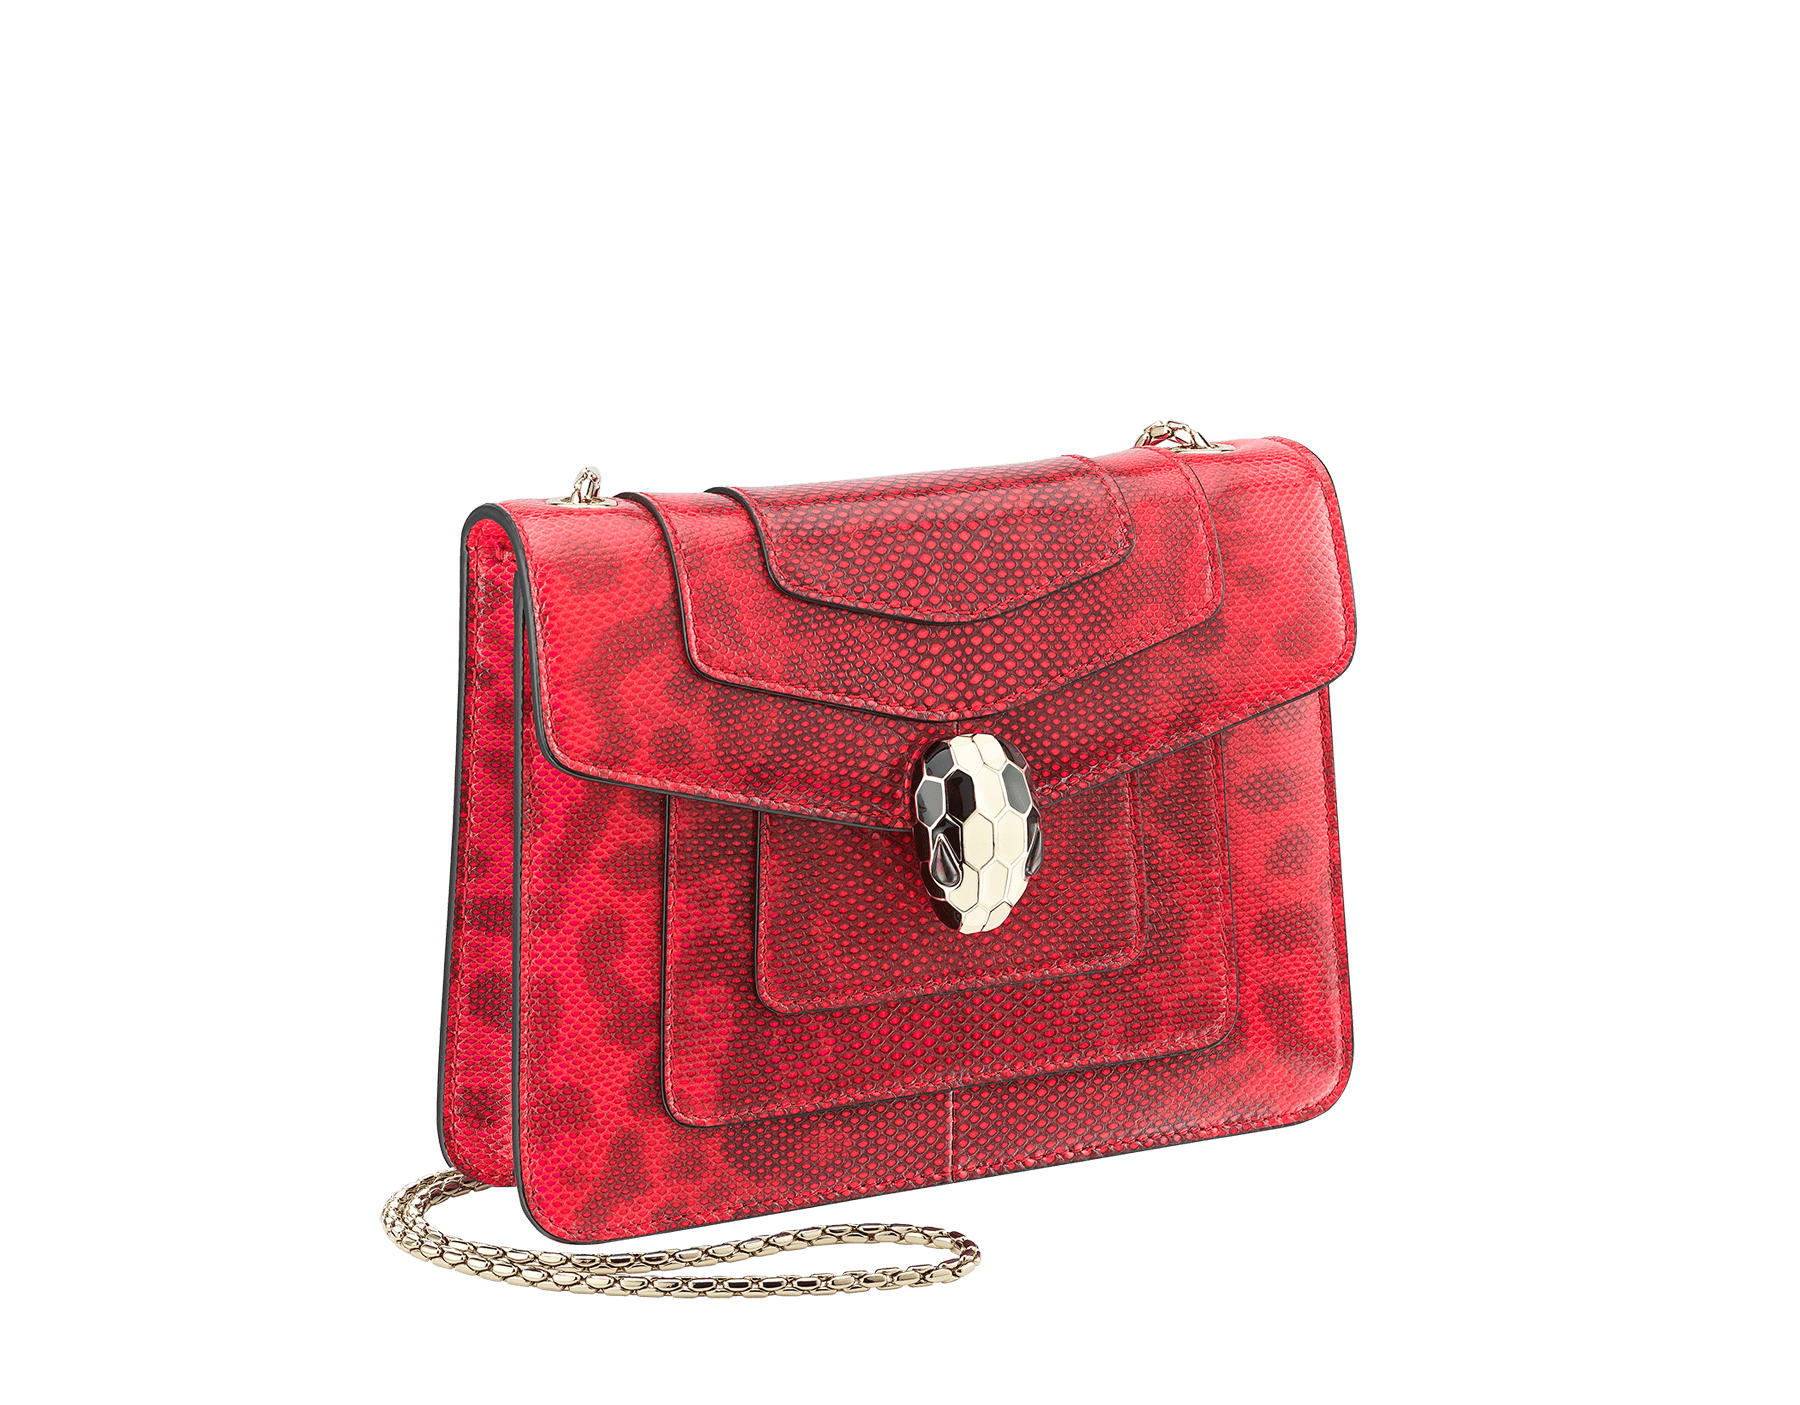 Serpenti Forever crossbody bag in sea star coral shiny karung skin. Snakehead closure in light gold plated brass decorated with black and white enamel, and green malachite eyes. 287911 image 2